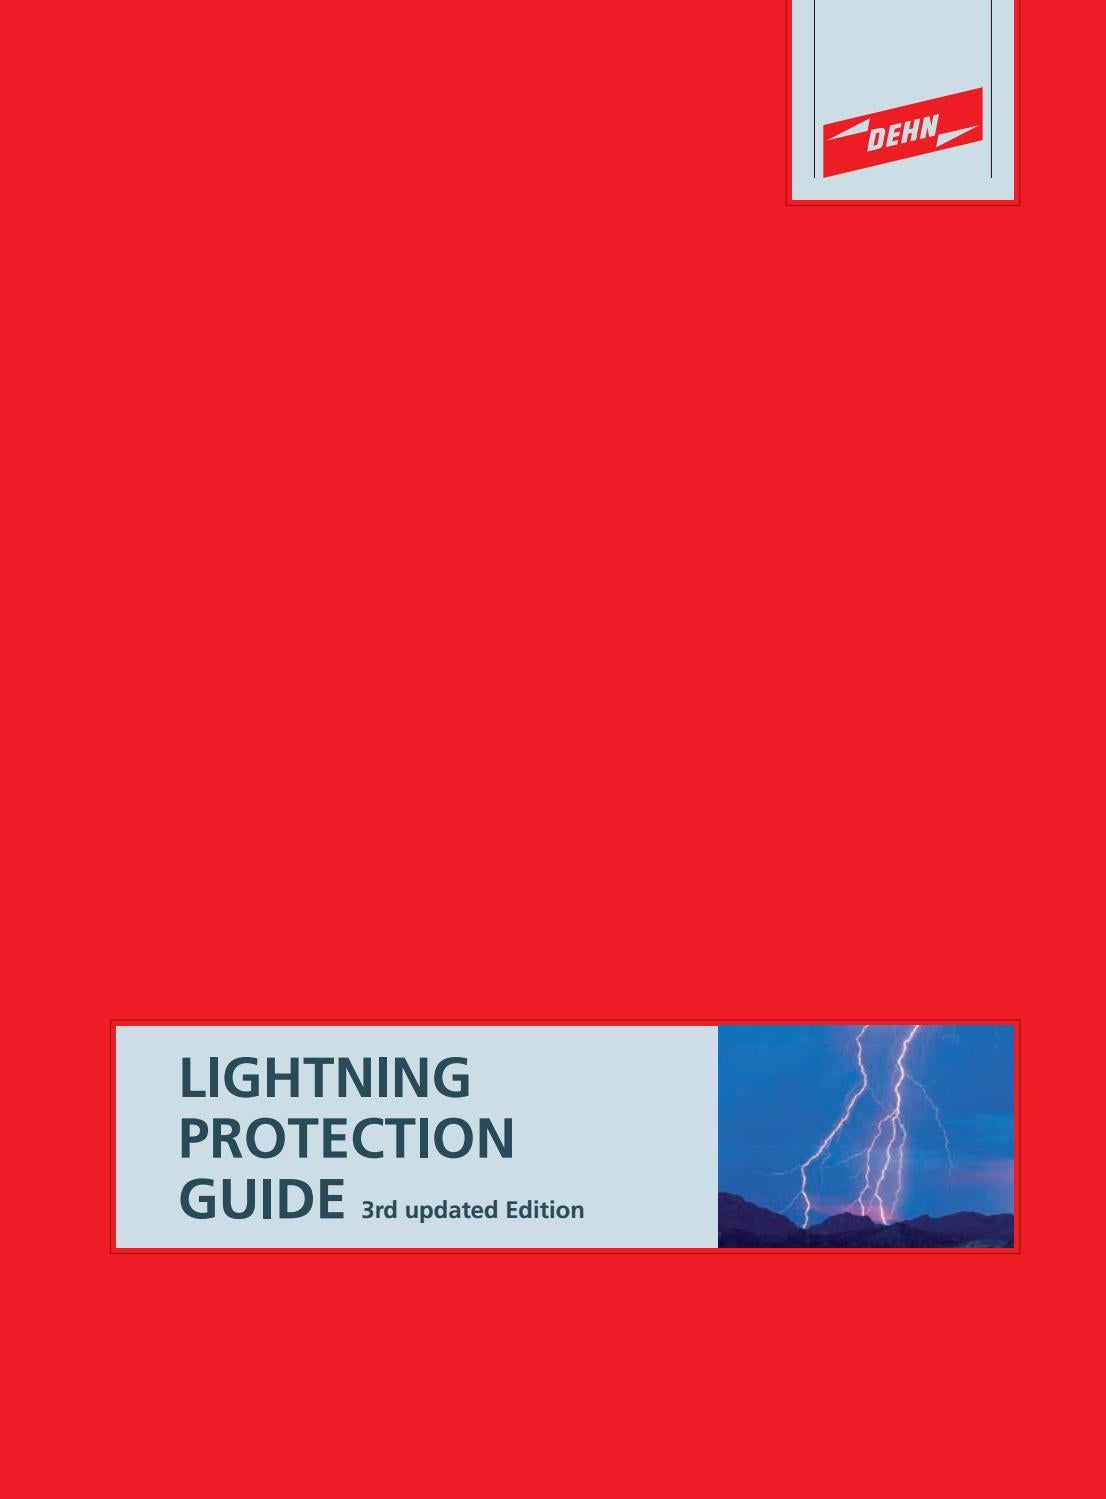 Lightning protection guide 2015 by Modiconlv - issuu